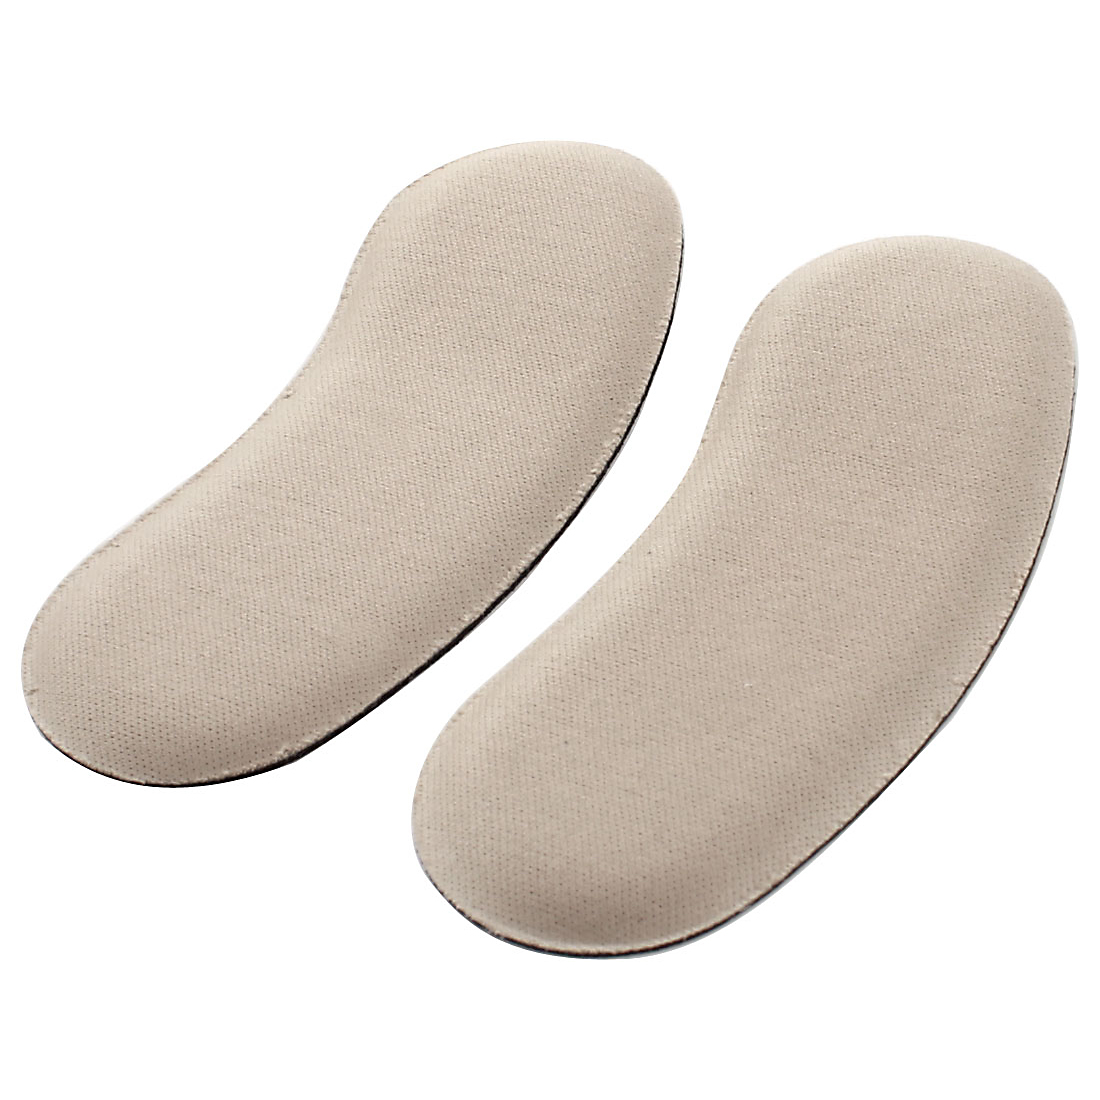 Pair Khaki Nylon Self Adhesive High Heel Shoes Insoles Back Pads for Women